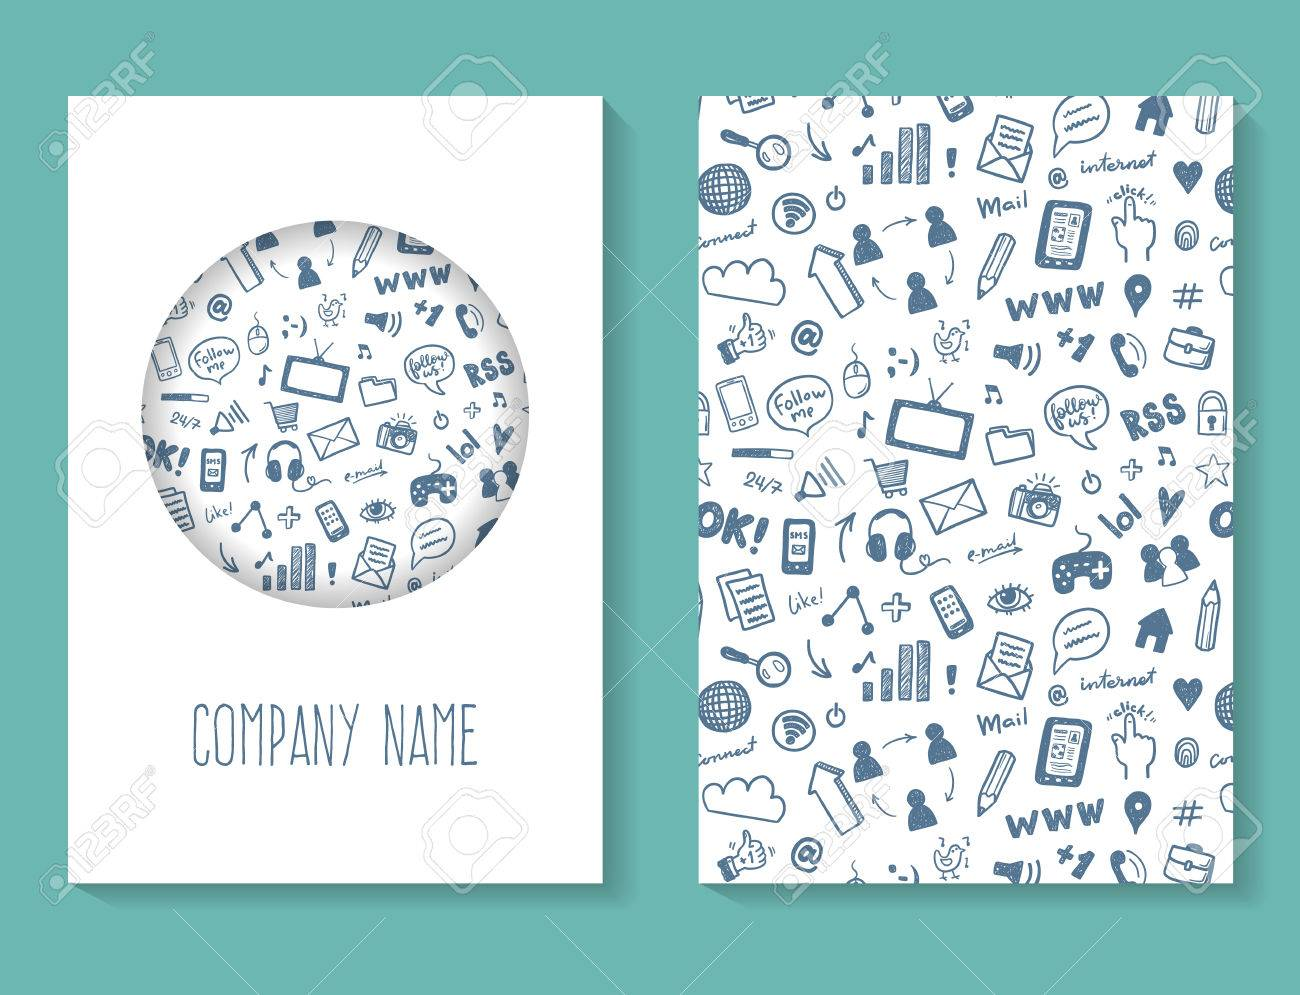 Social media brochure business card template royalty free cliparts social media brochure business card template stock vector 55687614 accmission Image collections